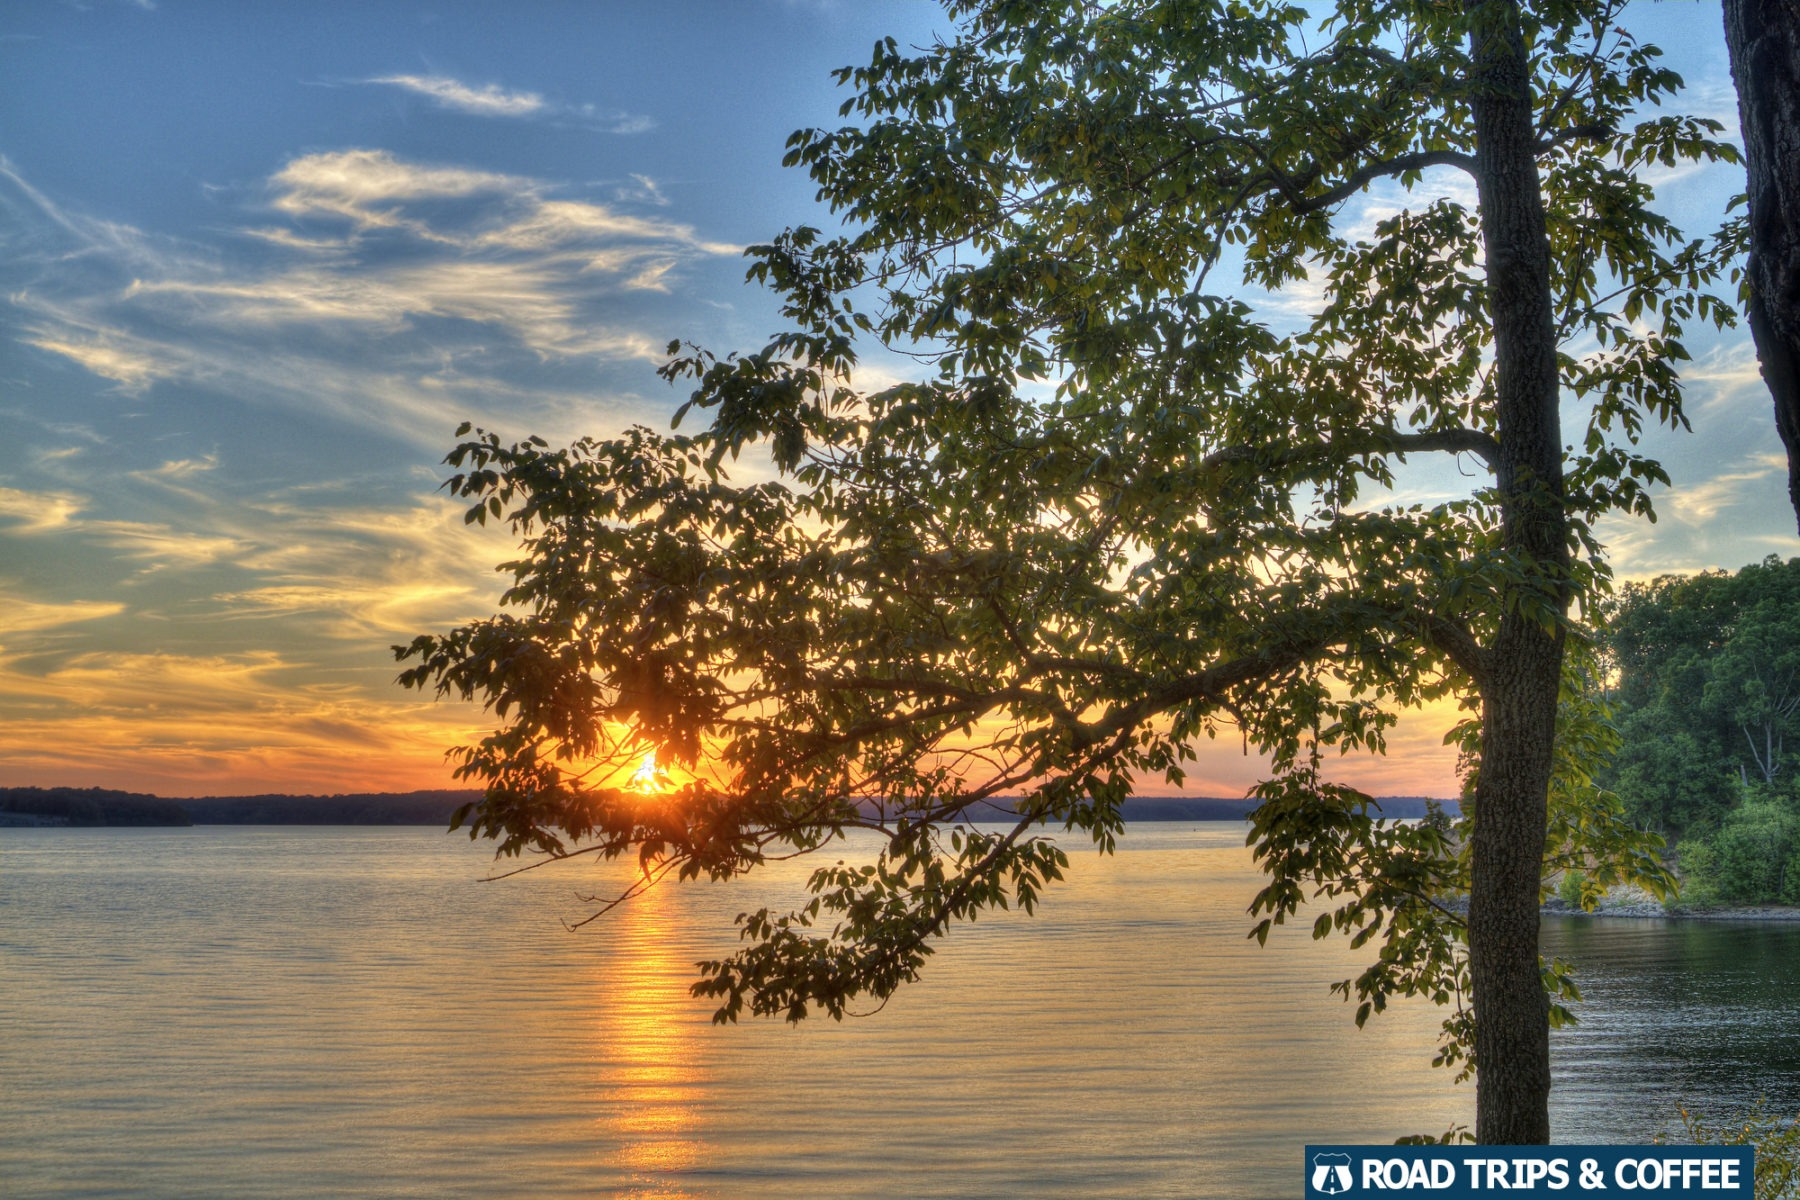 A warm sunset over Kentucky Lake seen from the campsite at the Redd Hollow Basic Campground at Land Between the Lakes National Recreation Area